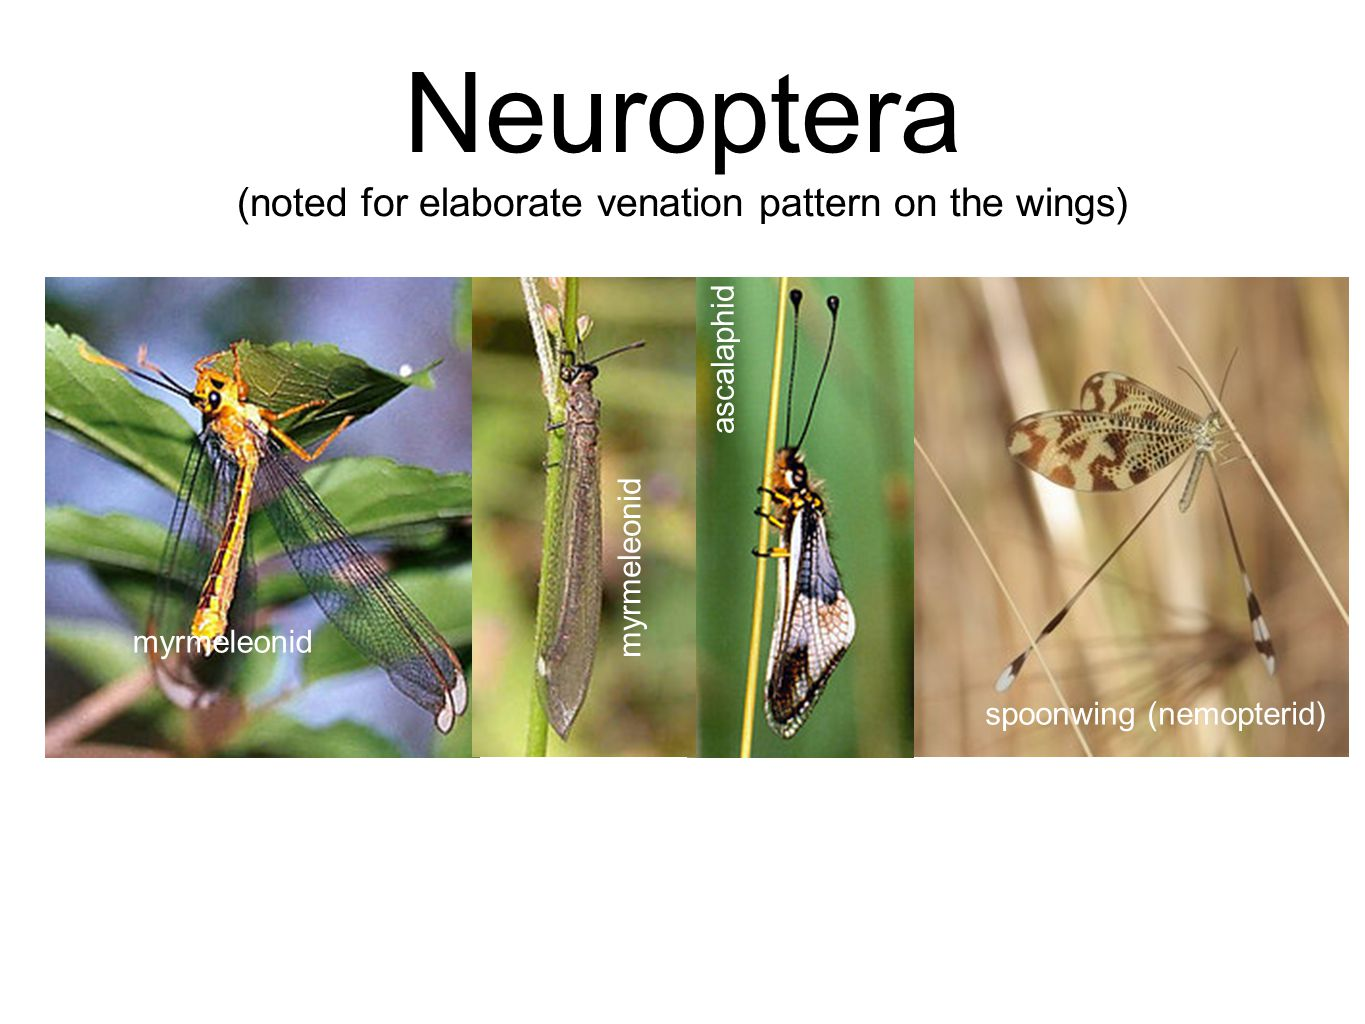 Neuroptera (noted for elaborate venation pattern on the wings)